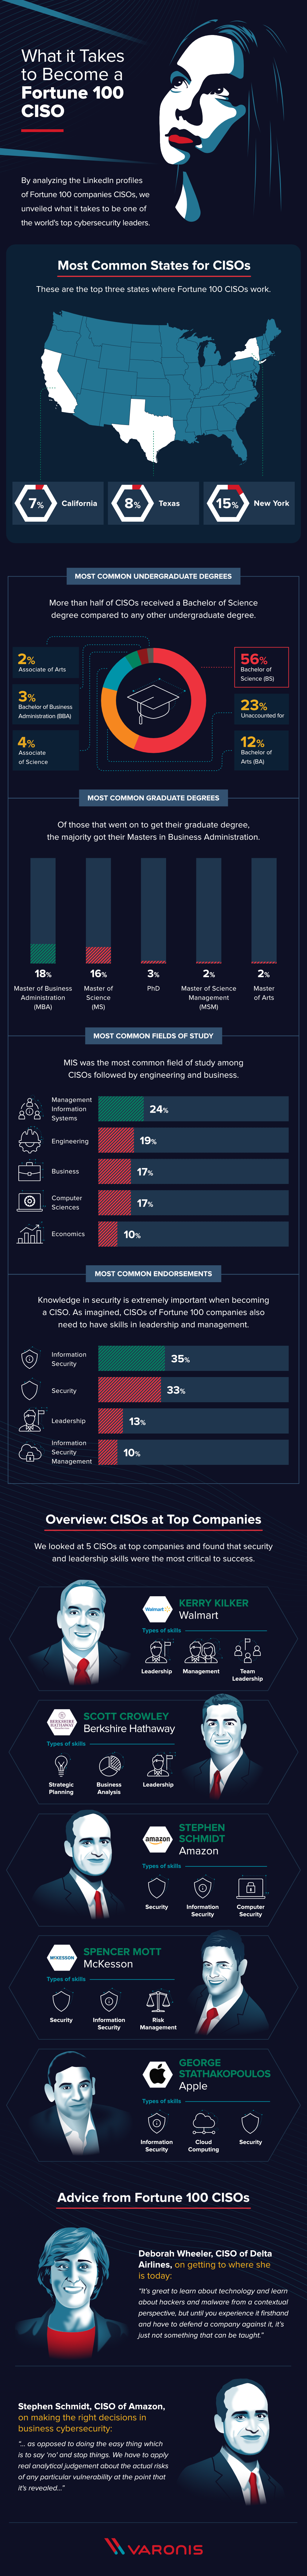 What Skills Should CISOs Have? Words of Wisdom from Fortune 100 CISOs - Infographic